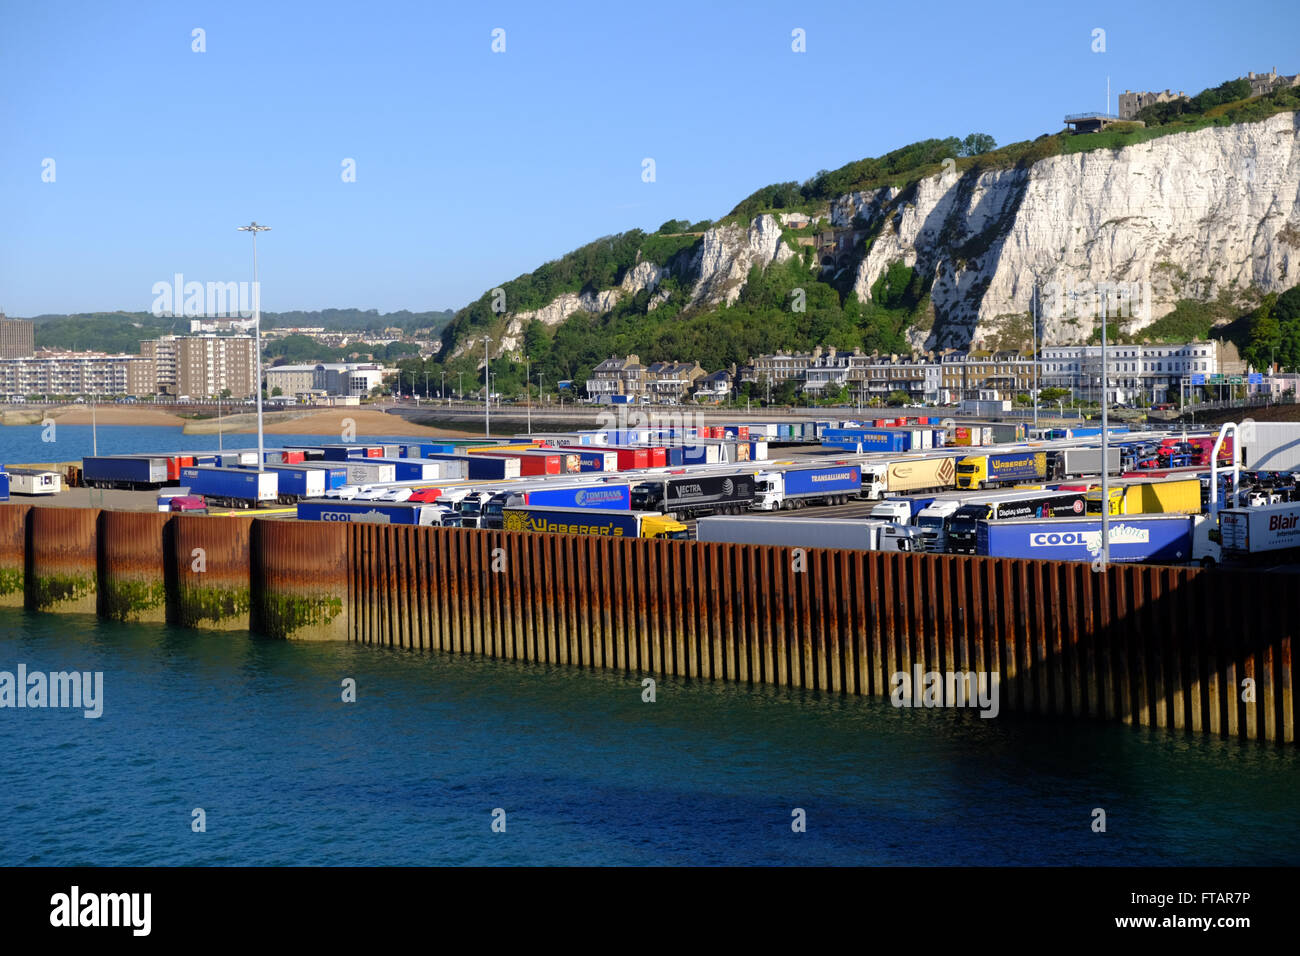 Parked lorries in the Port of Dover, Kent, UK - Stock Image